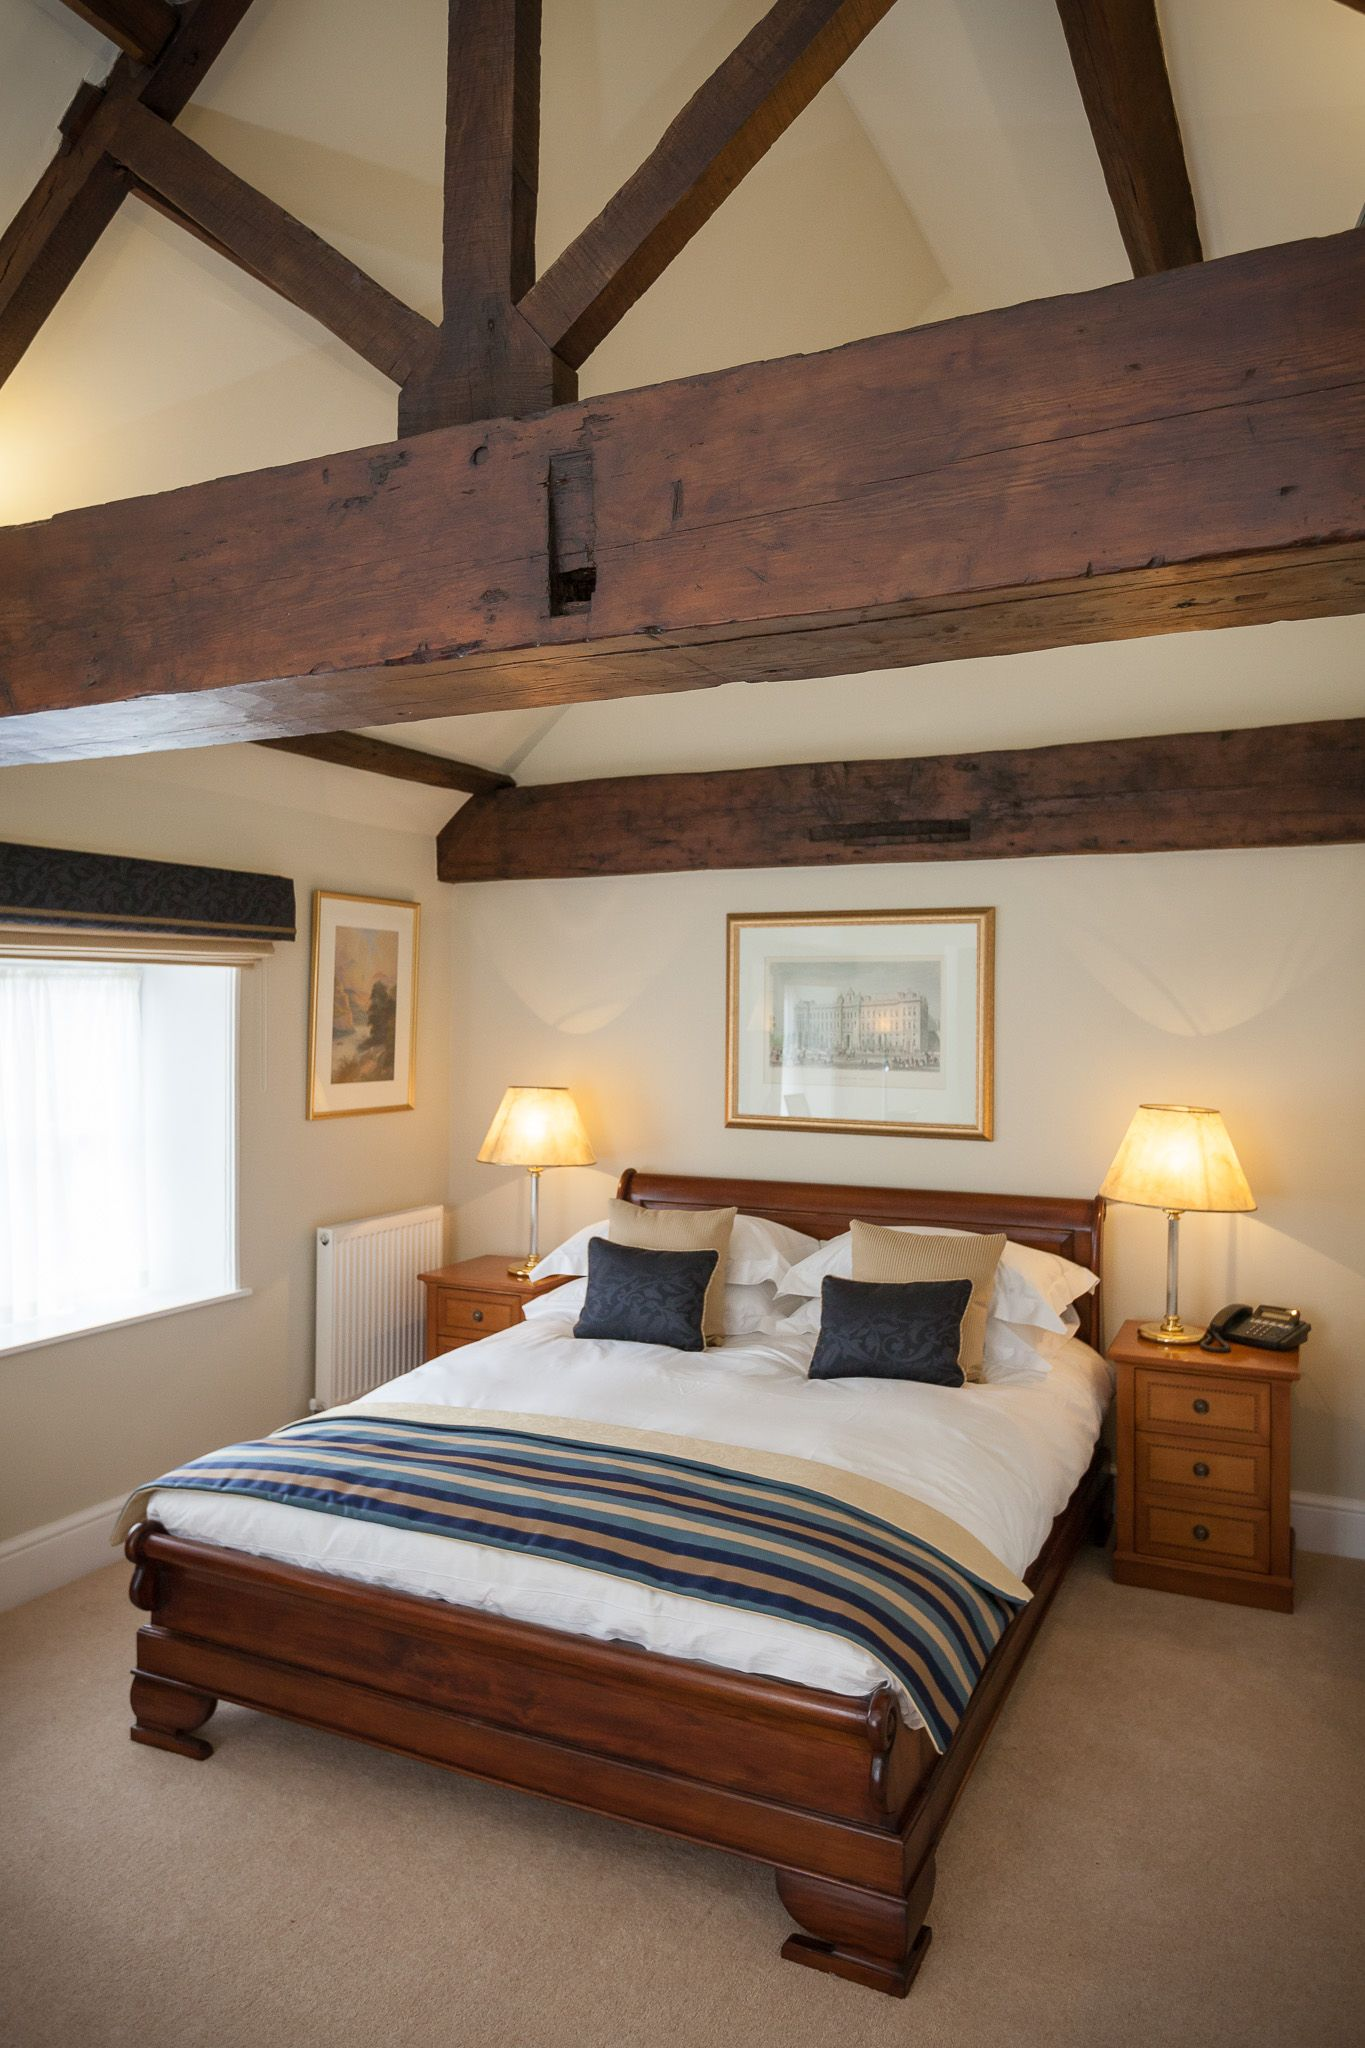 Deluxe rooms at Goldsborough Hall. Image by Peter Boyd Photography